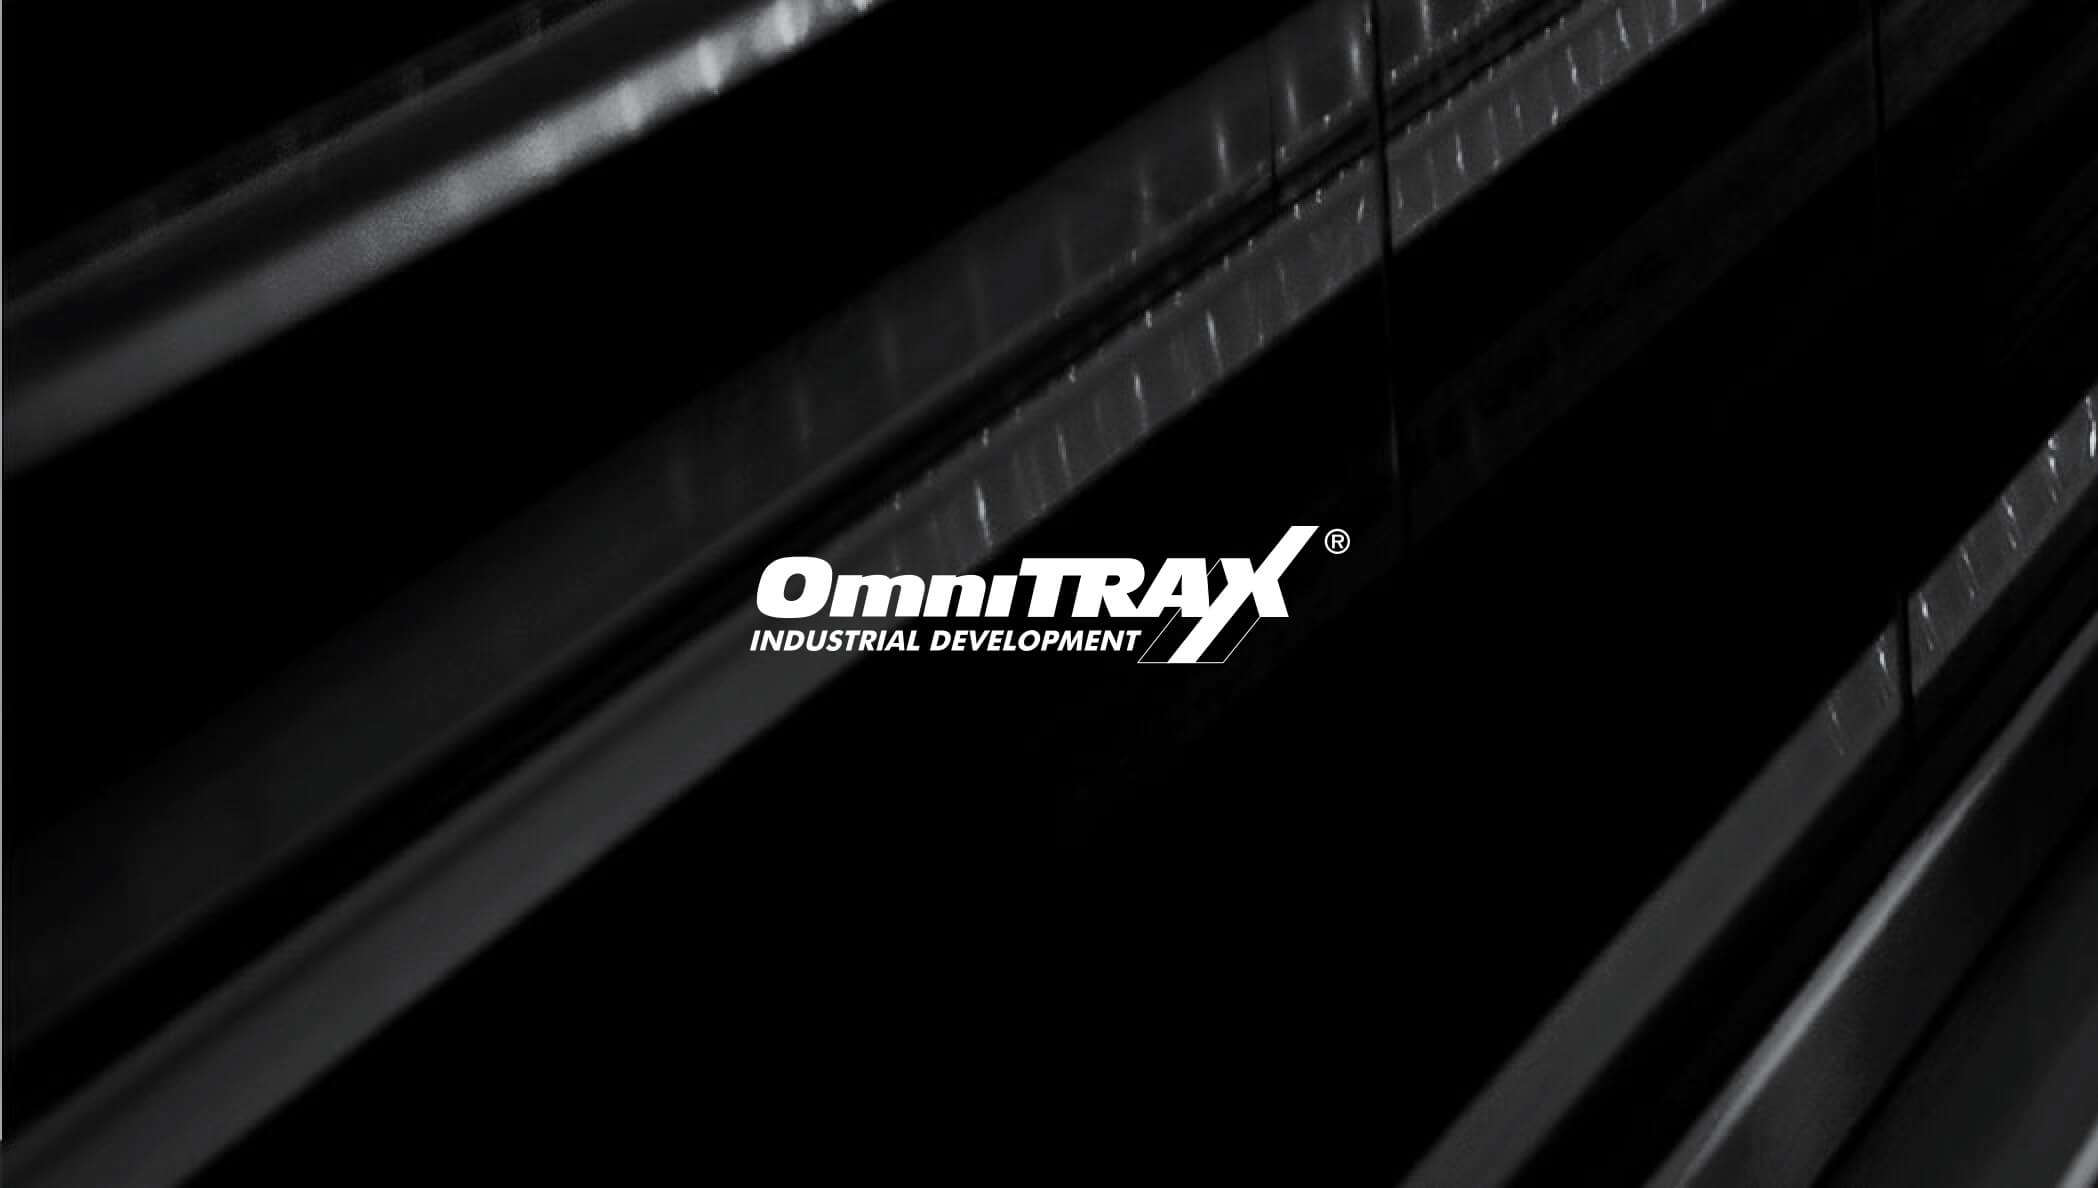 A white OmniTrax company logo sits in front of a dark gray abstraction of railroad tracks.